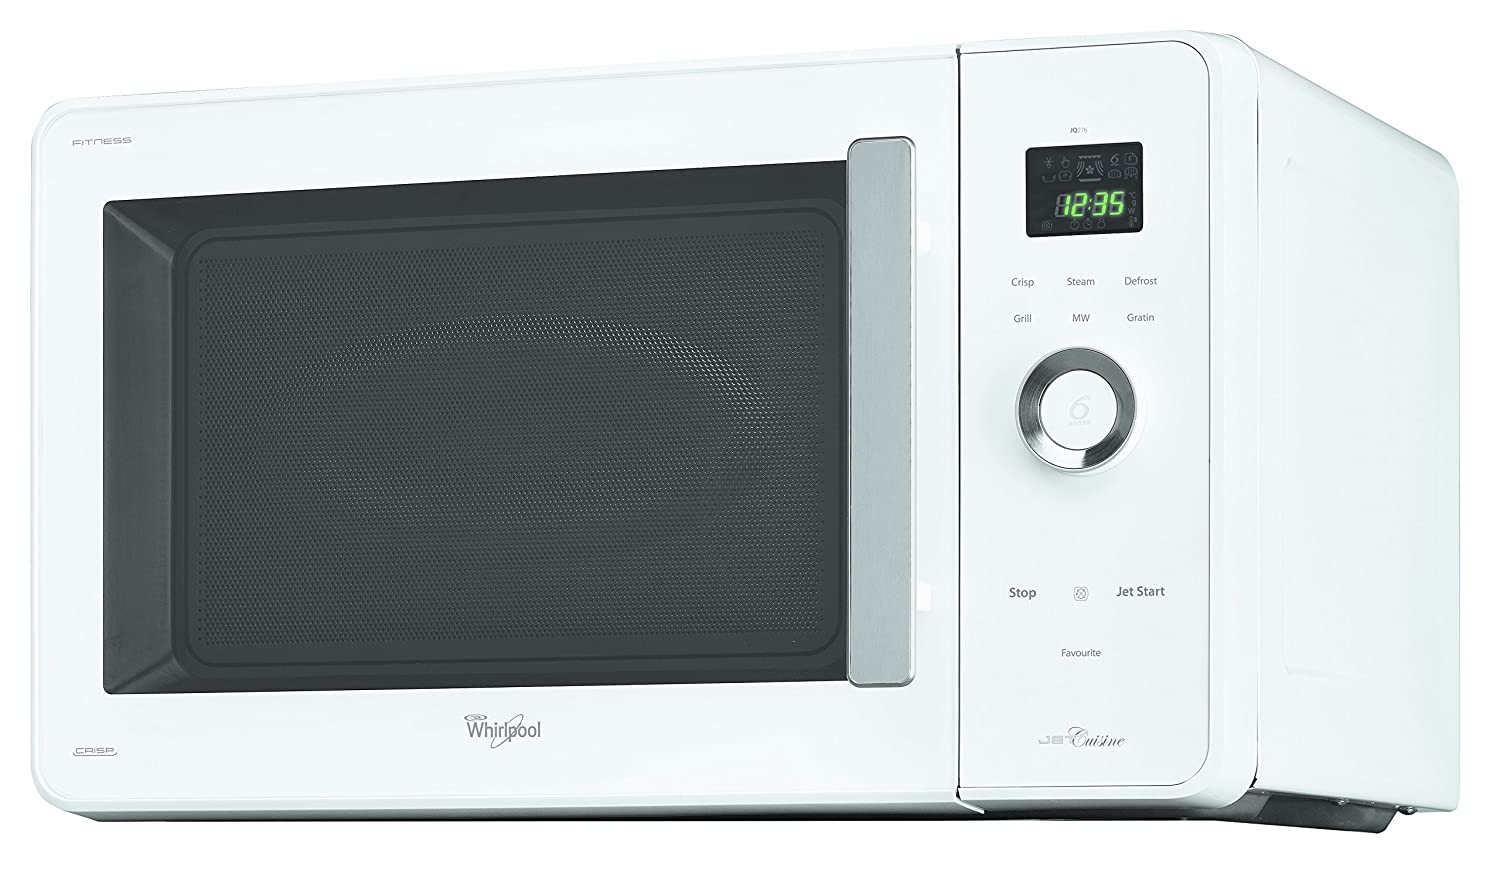 Whirlpool JQ 276 WH - Microondas, 950 W, 30 l, color blanco